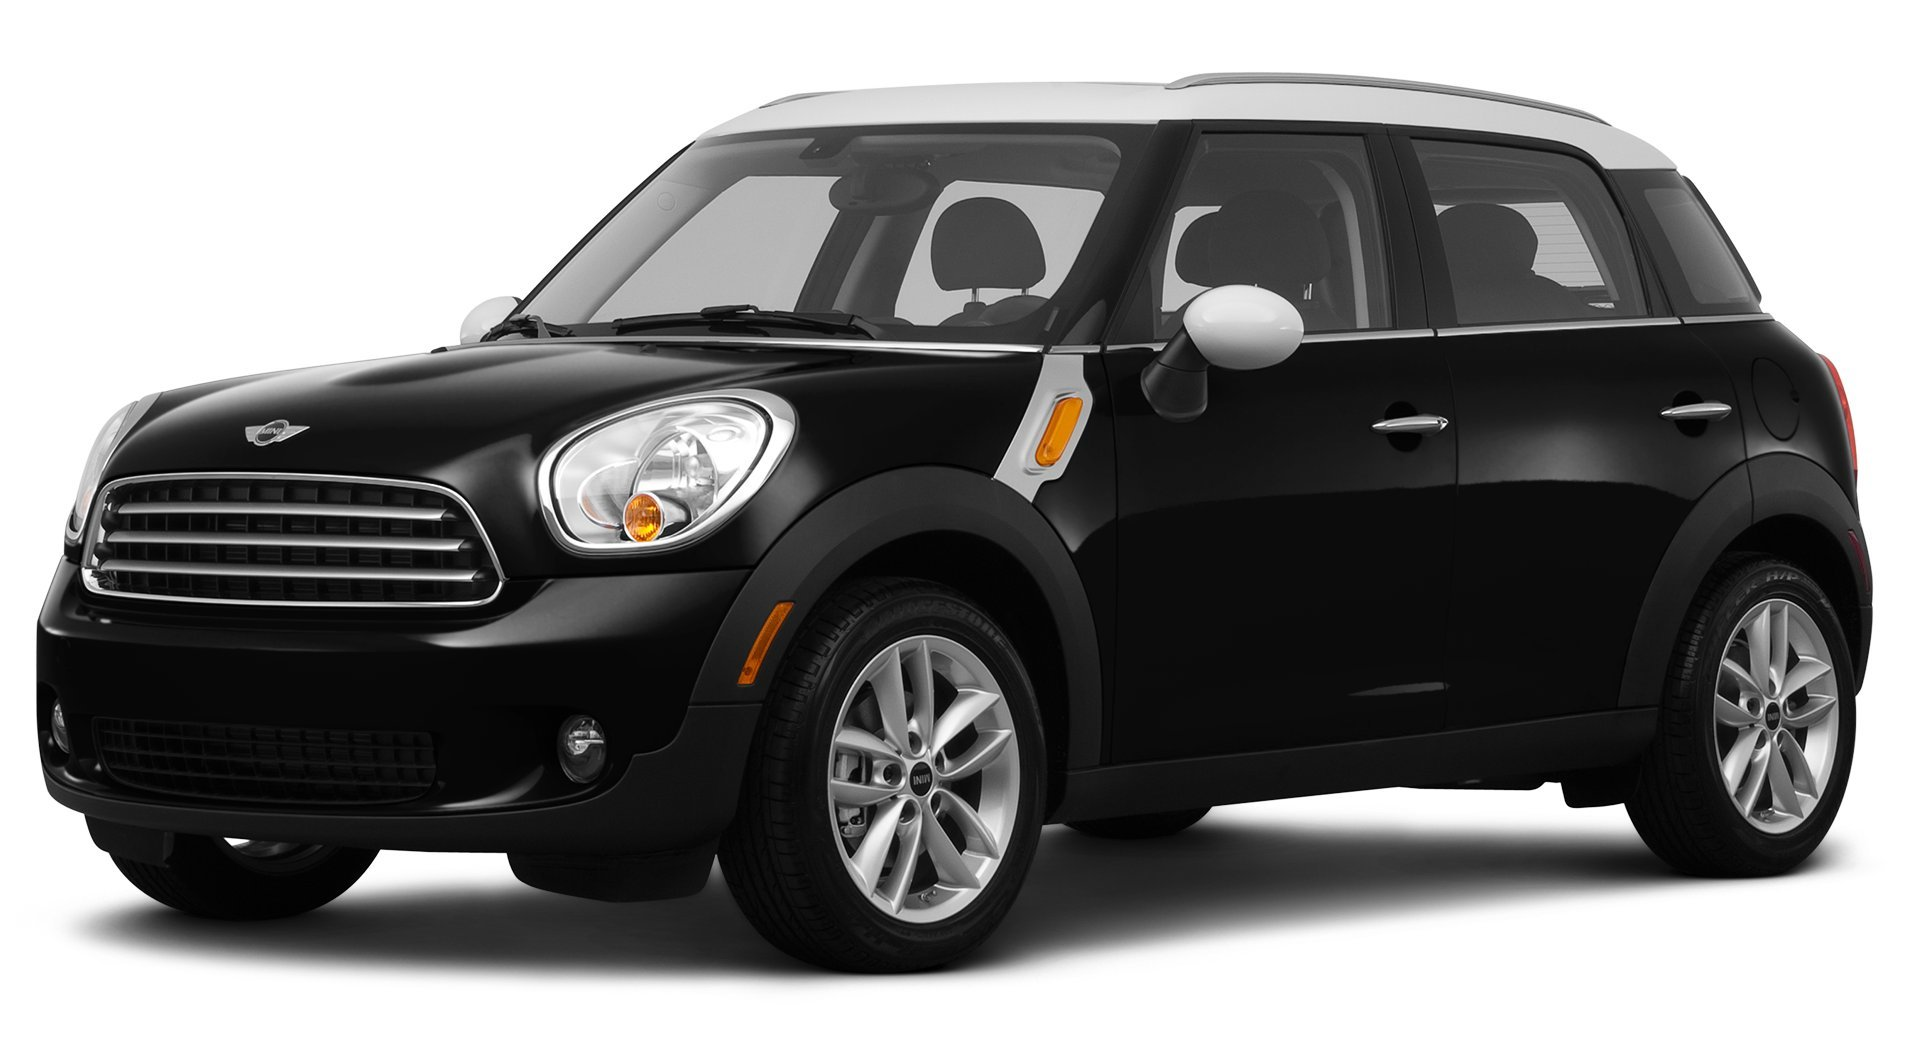 2012 mini cooper countryman reviews images and specs vehicles. Black Bedroom Furniture Sets. Home Design Ideas